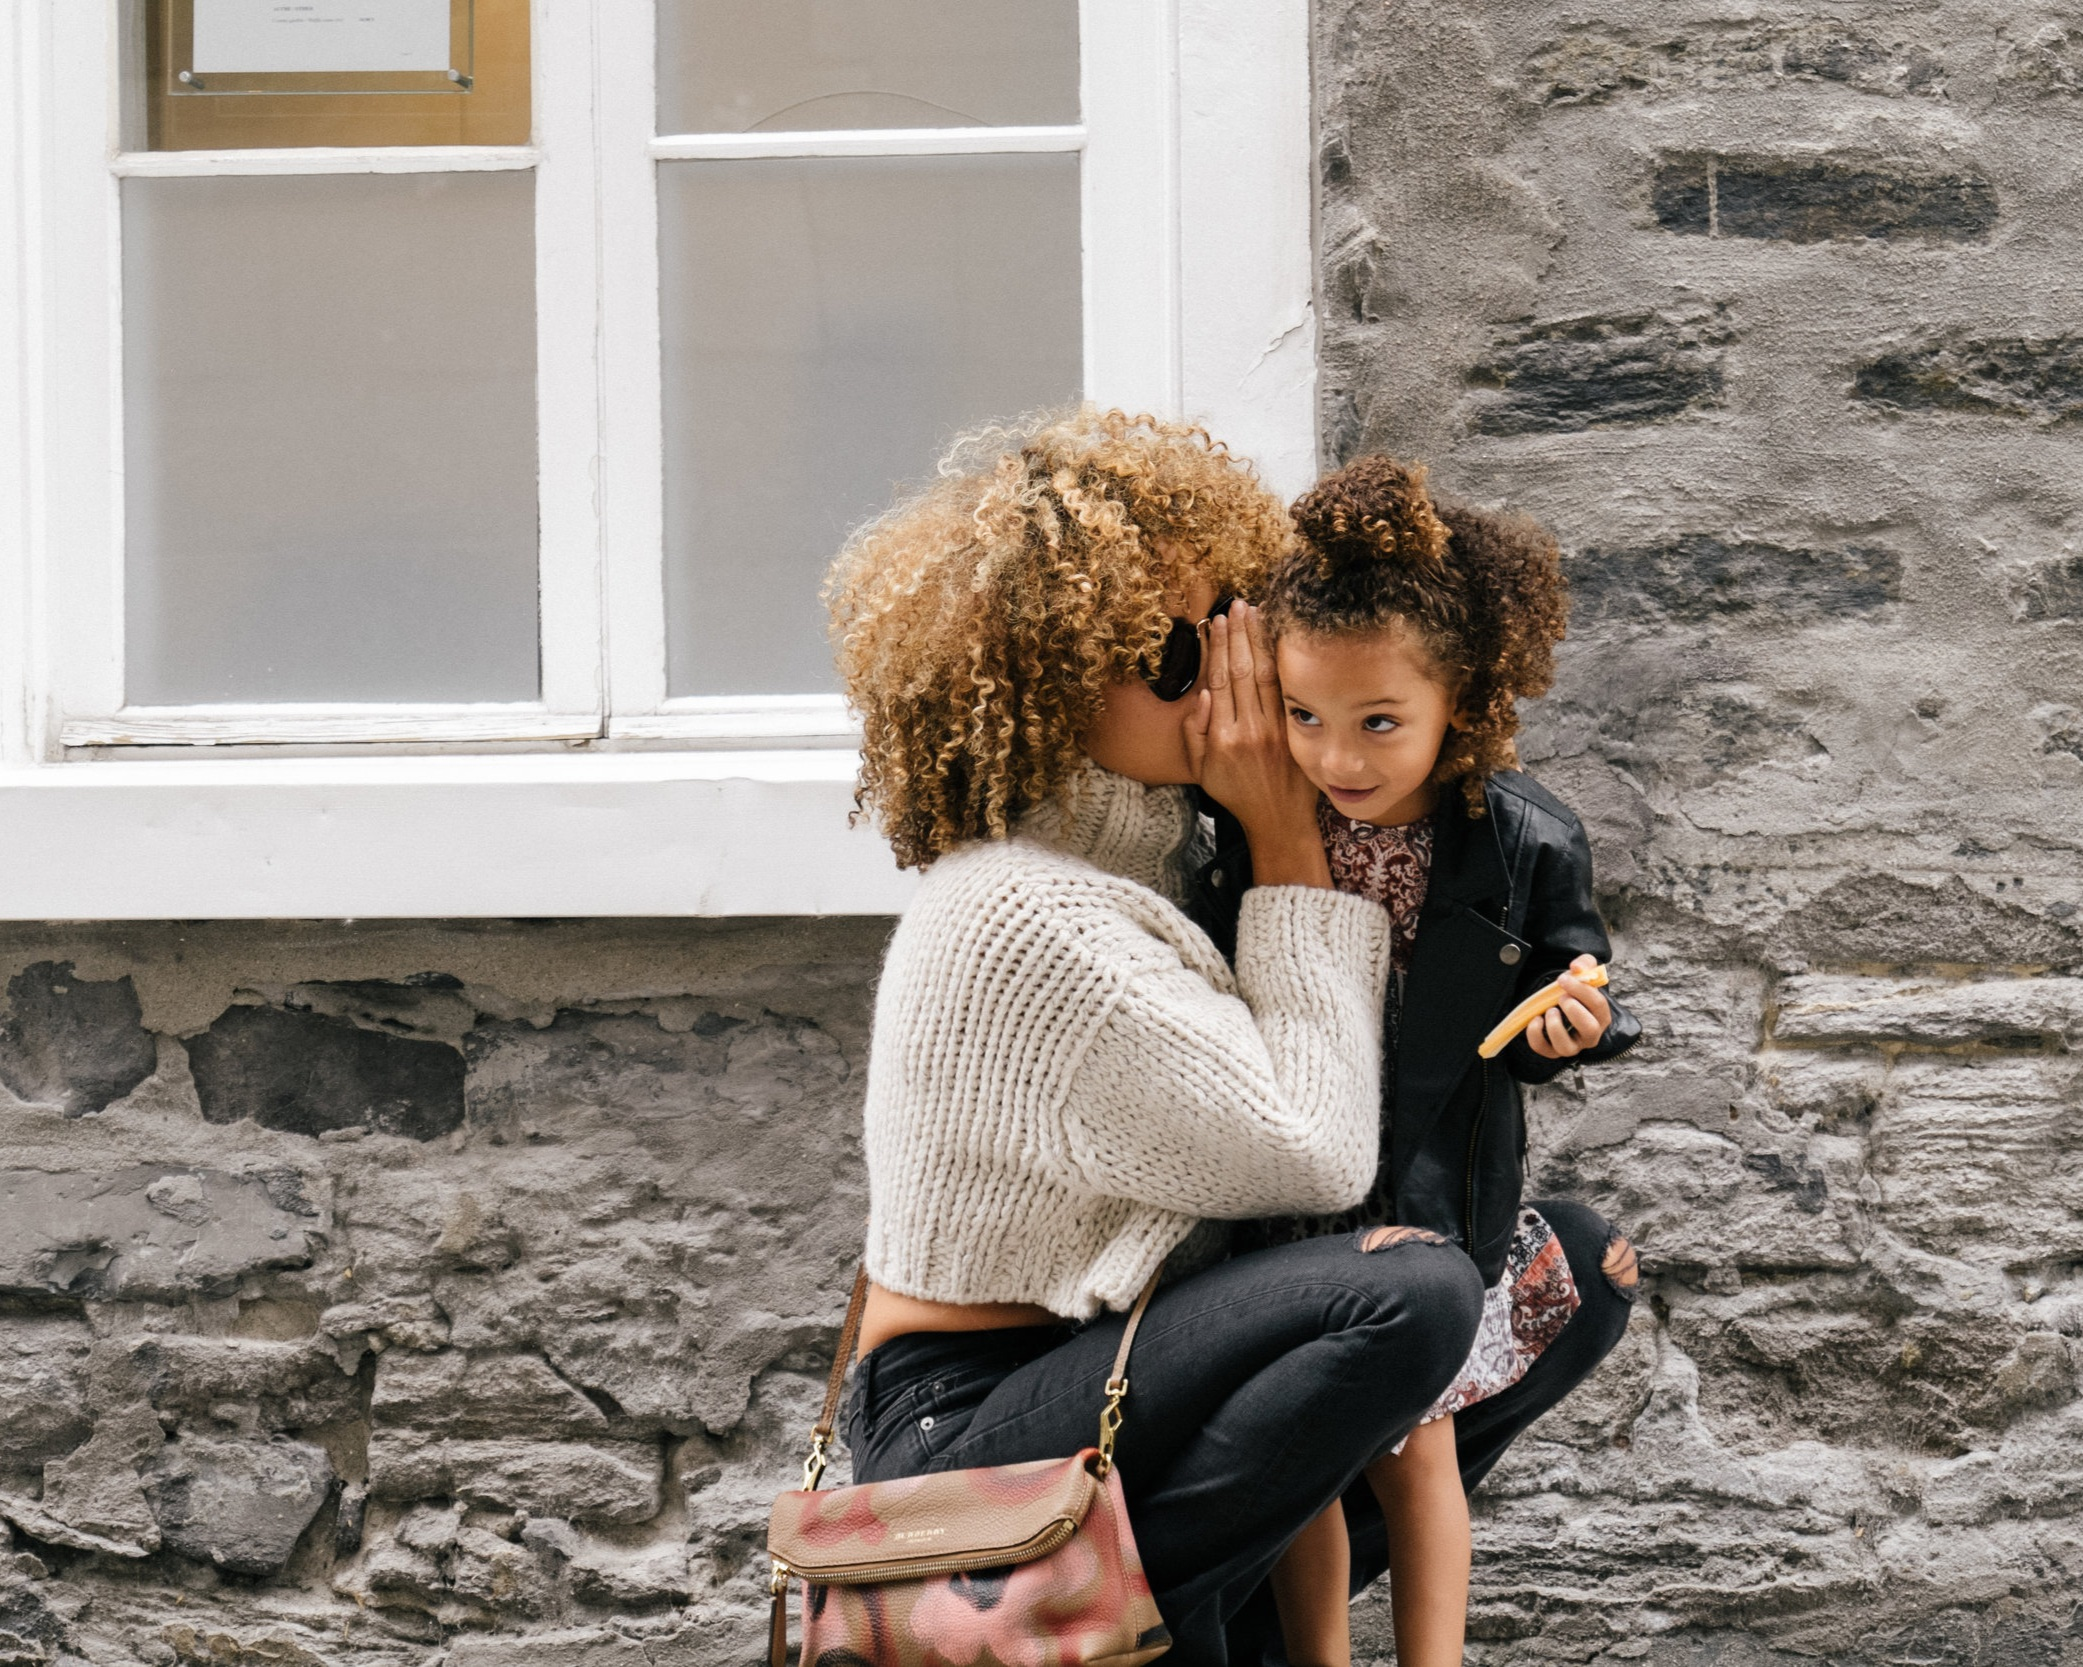 from the experts - Communication Tips for Parents. Getting our children to communicate can prove challenging. Here are some tips from the experts for getting them to talk more.